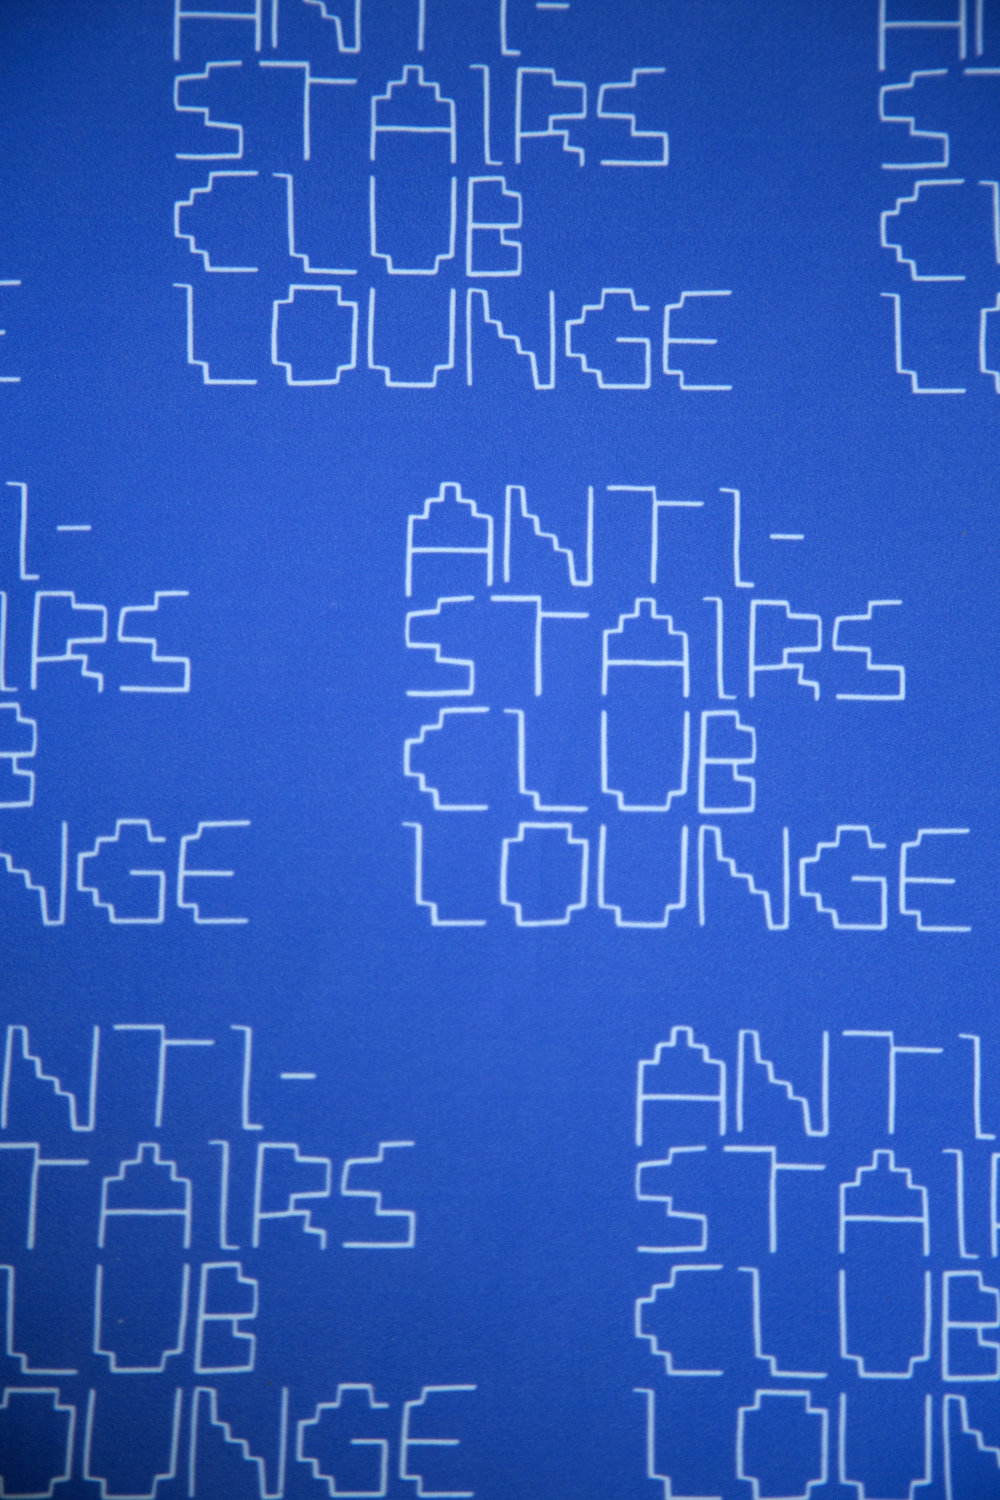 Anti-Stairs Club Lounge by Shannon Finnegan  Photo by Verónica González Mayoral